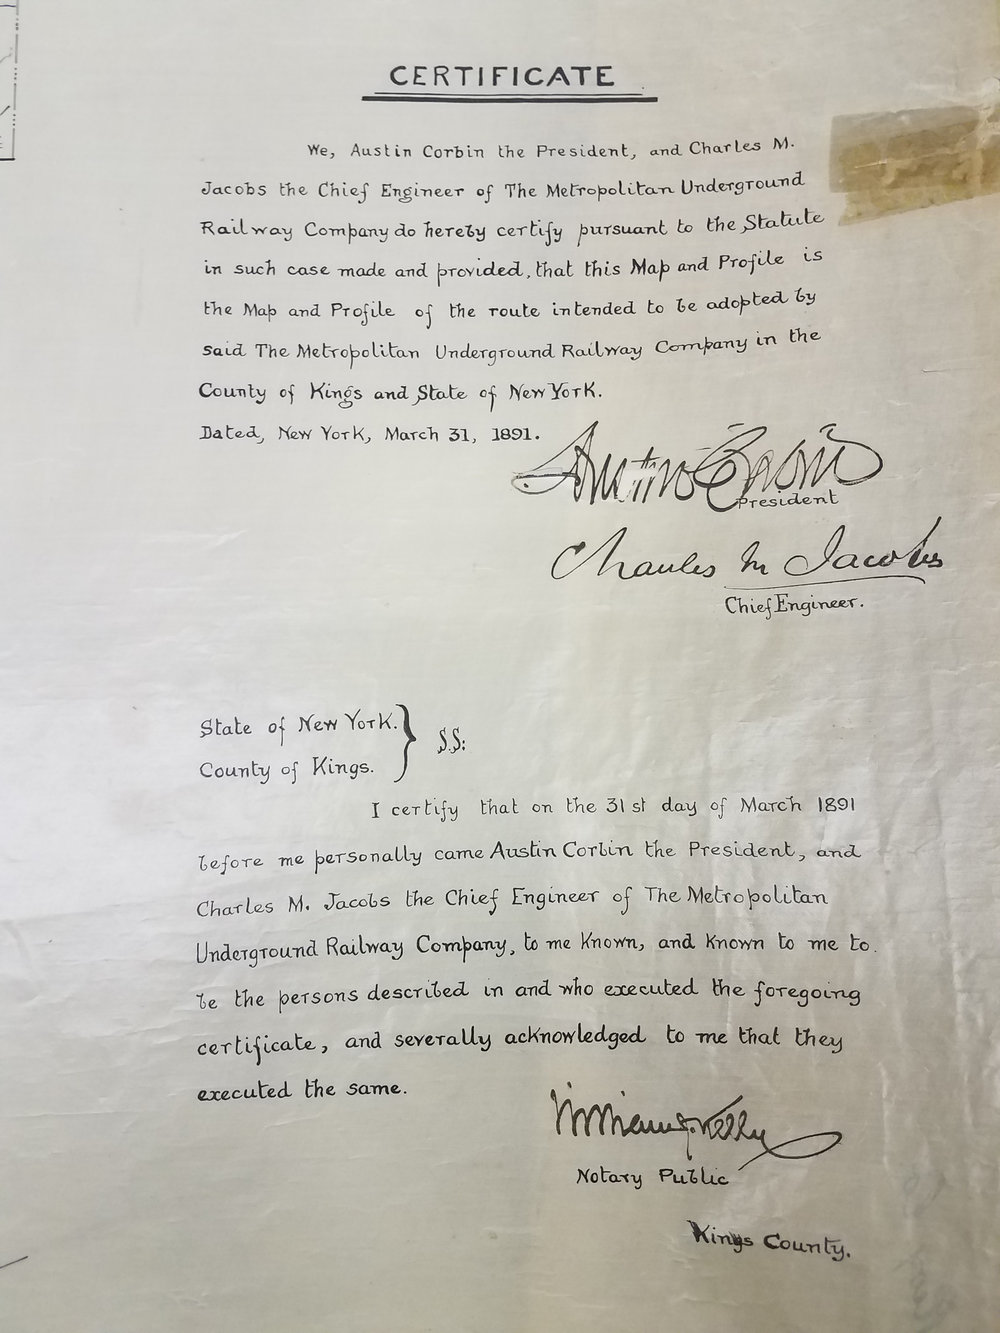 Signed statements from Austin Corbin, President, and Charles M. Jacobs, Chief Engineer of the Metropolitan Underground Railway Company, 1891. City Register collection, NYC Municipal Archives.